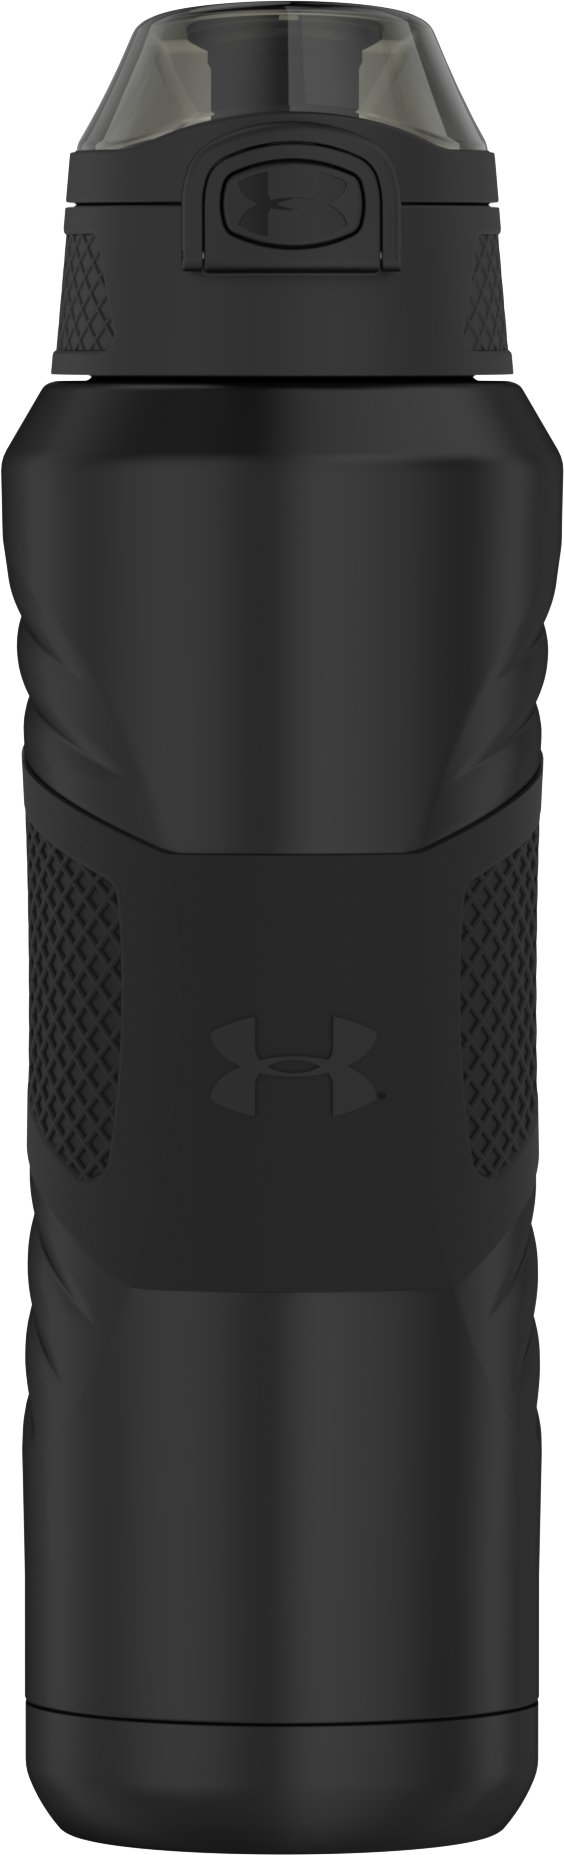 UA Dominate 24 oz. Vacuum-Insulated Water Bottle with Flip Top Lid 5 Colors $31.99 - $32.00